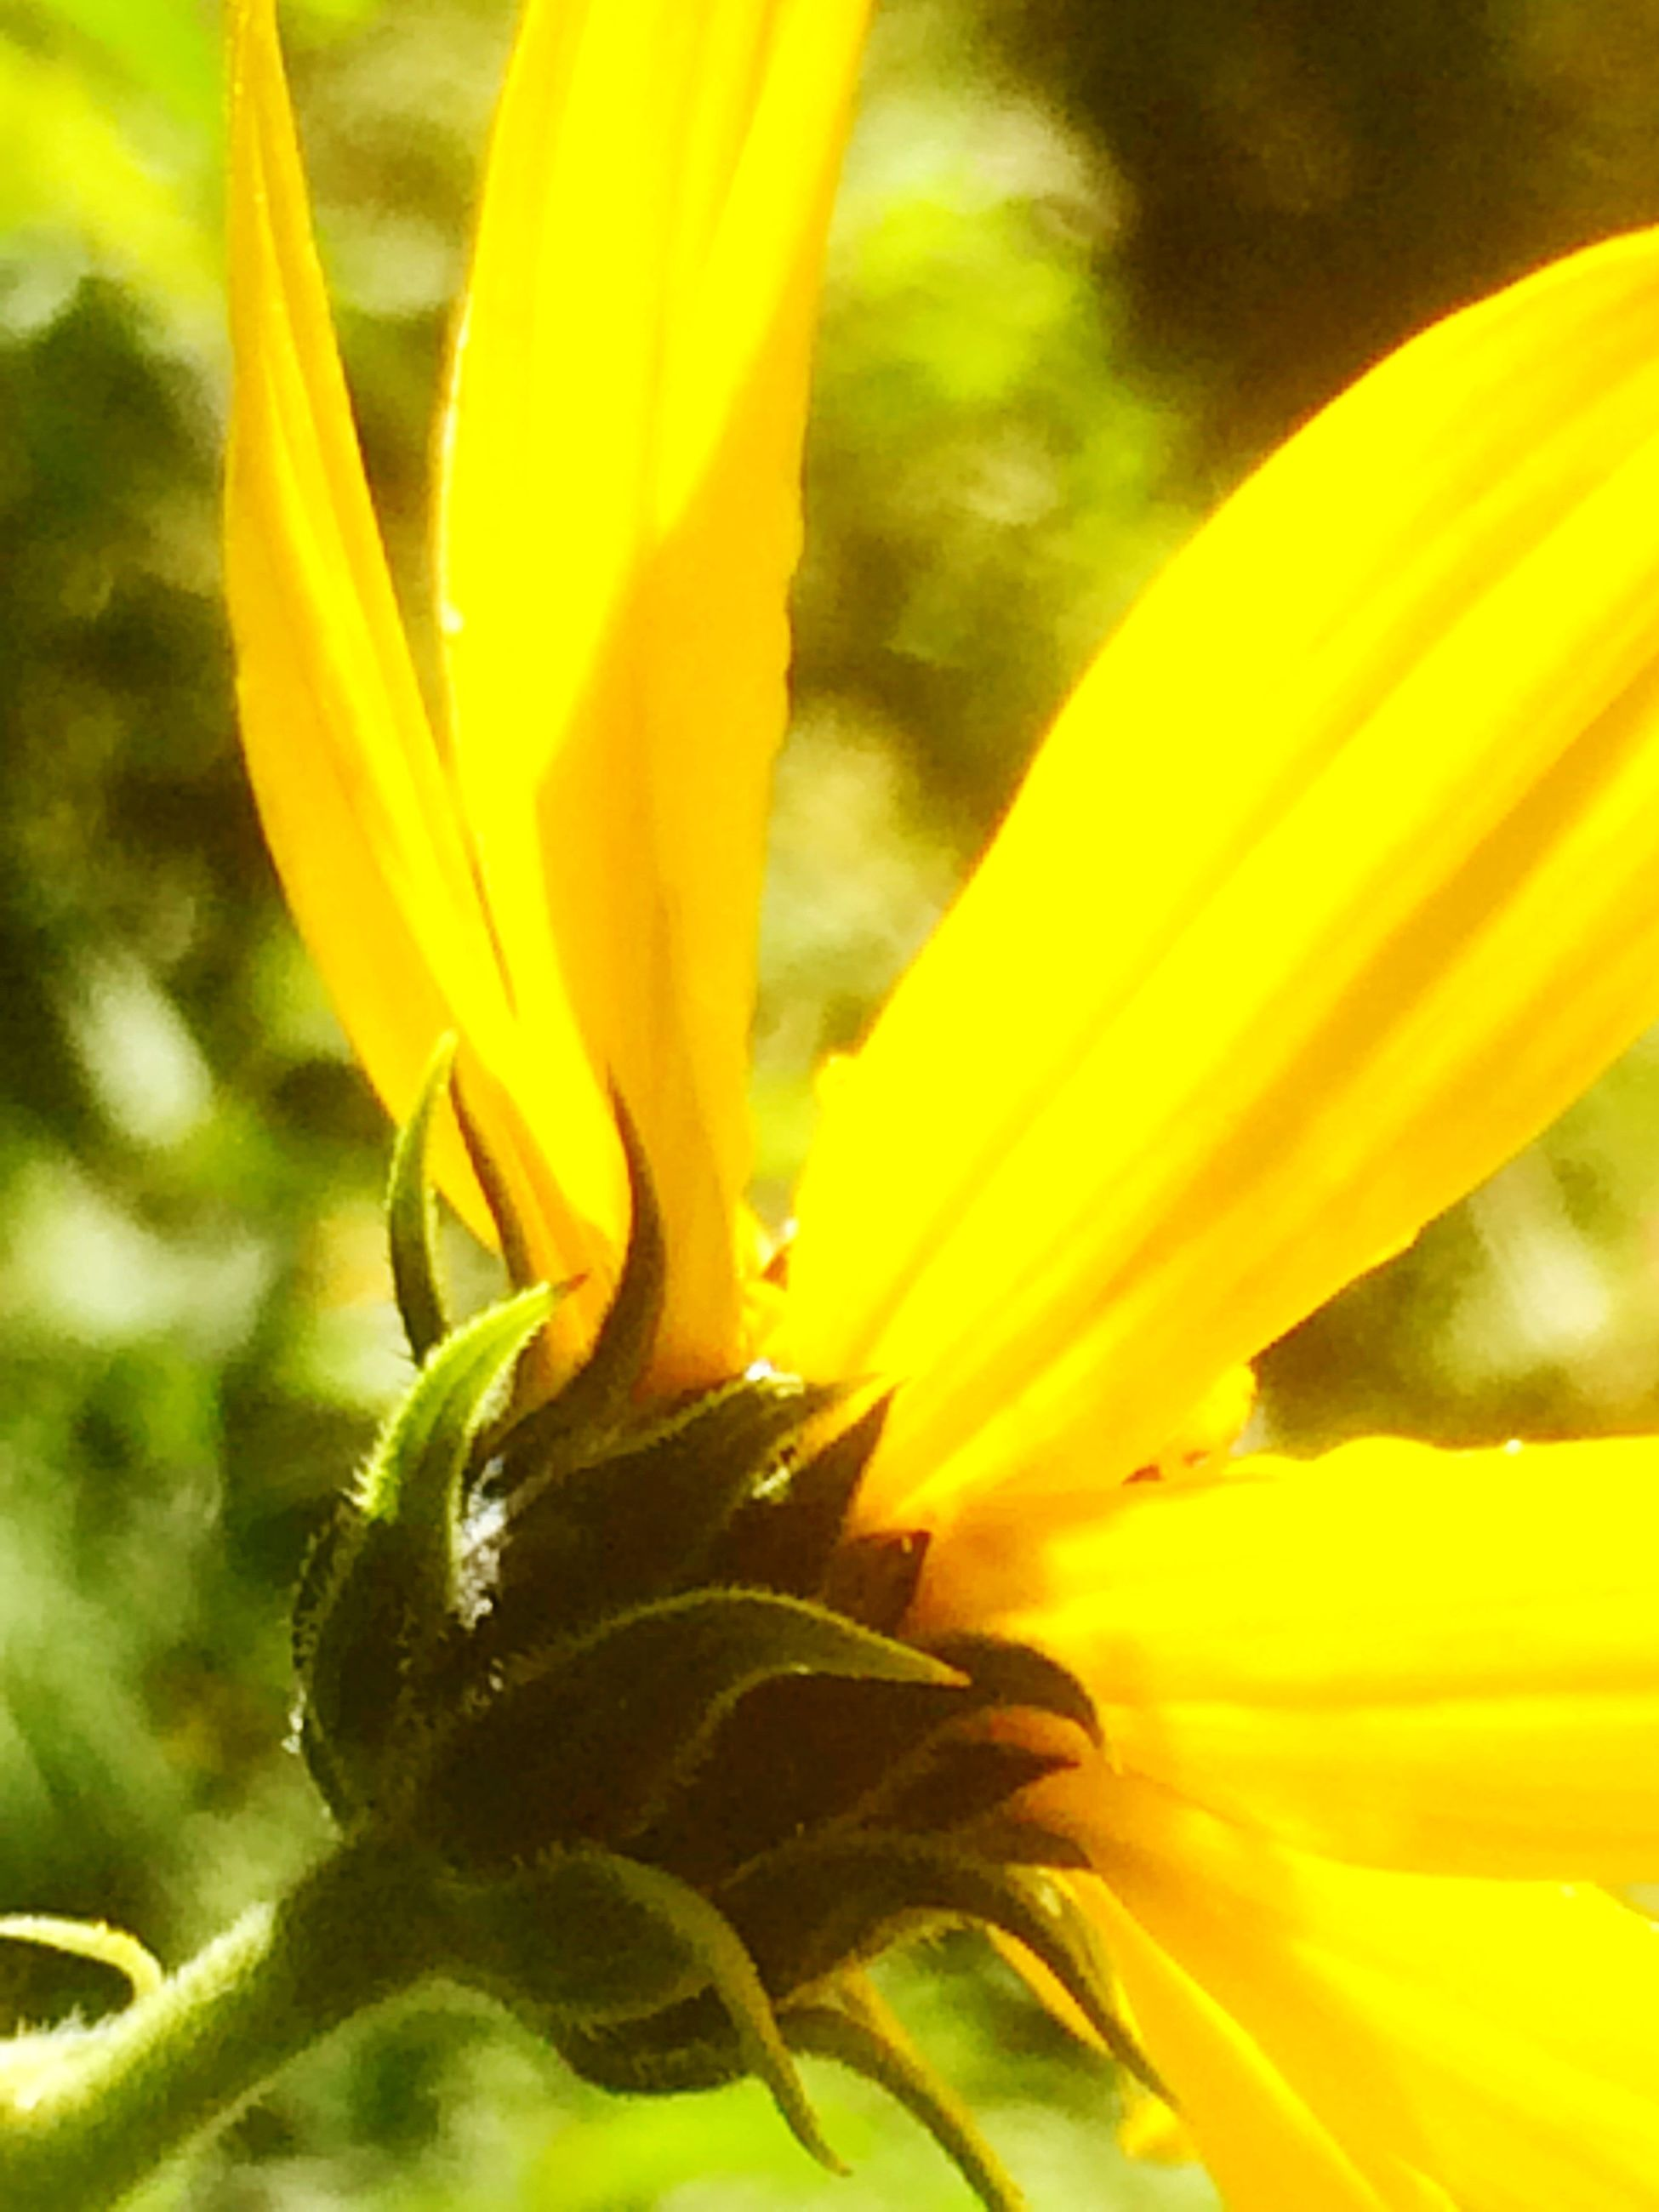 flower, petal, freshness, fragility, flower head, yellow, close-up, beauty in nature, growth, nature, single flower, plant, selective focus, springtime, blossom, vibrant color, extreme close-up, sunflower, in bloom, macro, botany, softness, outdoors, day, extreme close up, bloom, soft focus, sepal